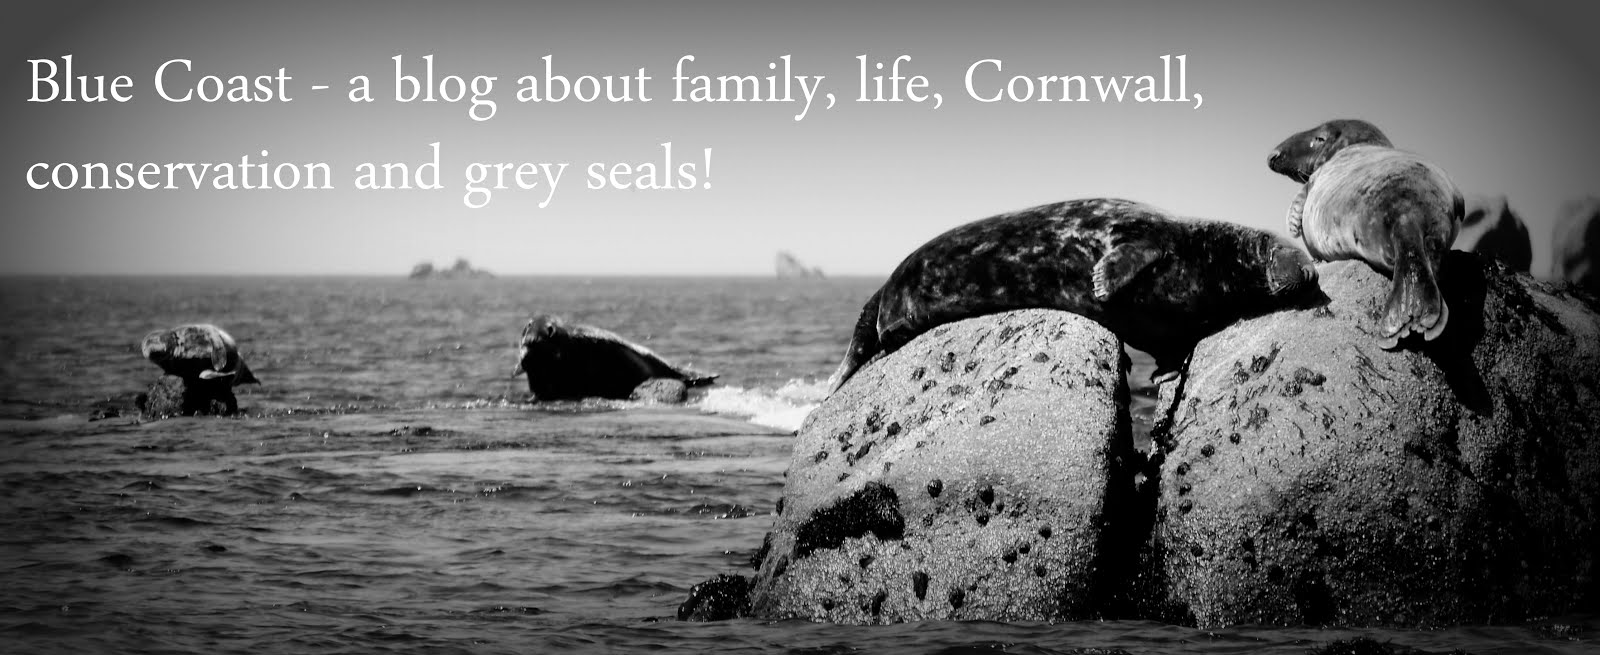 Blue Coast - a blog about family, life, Cornwall, conservation and grey seals!